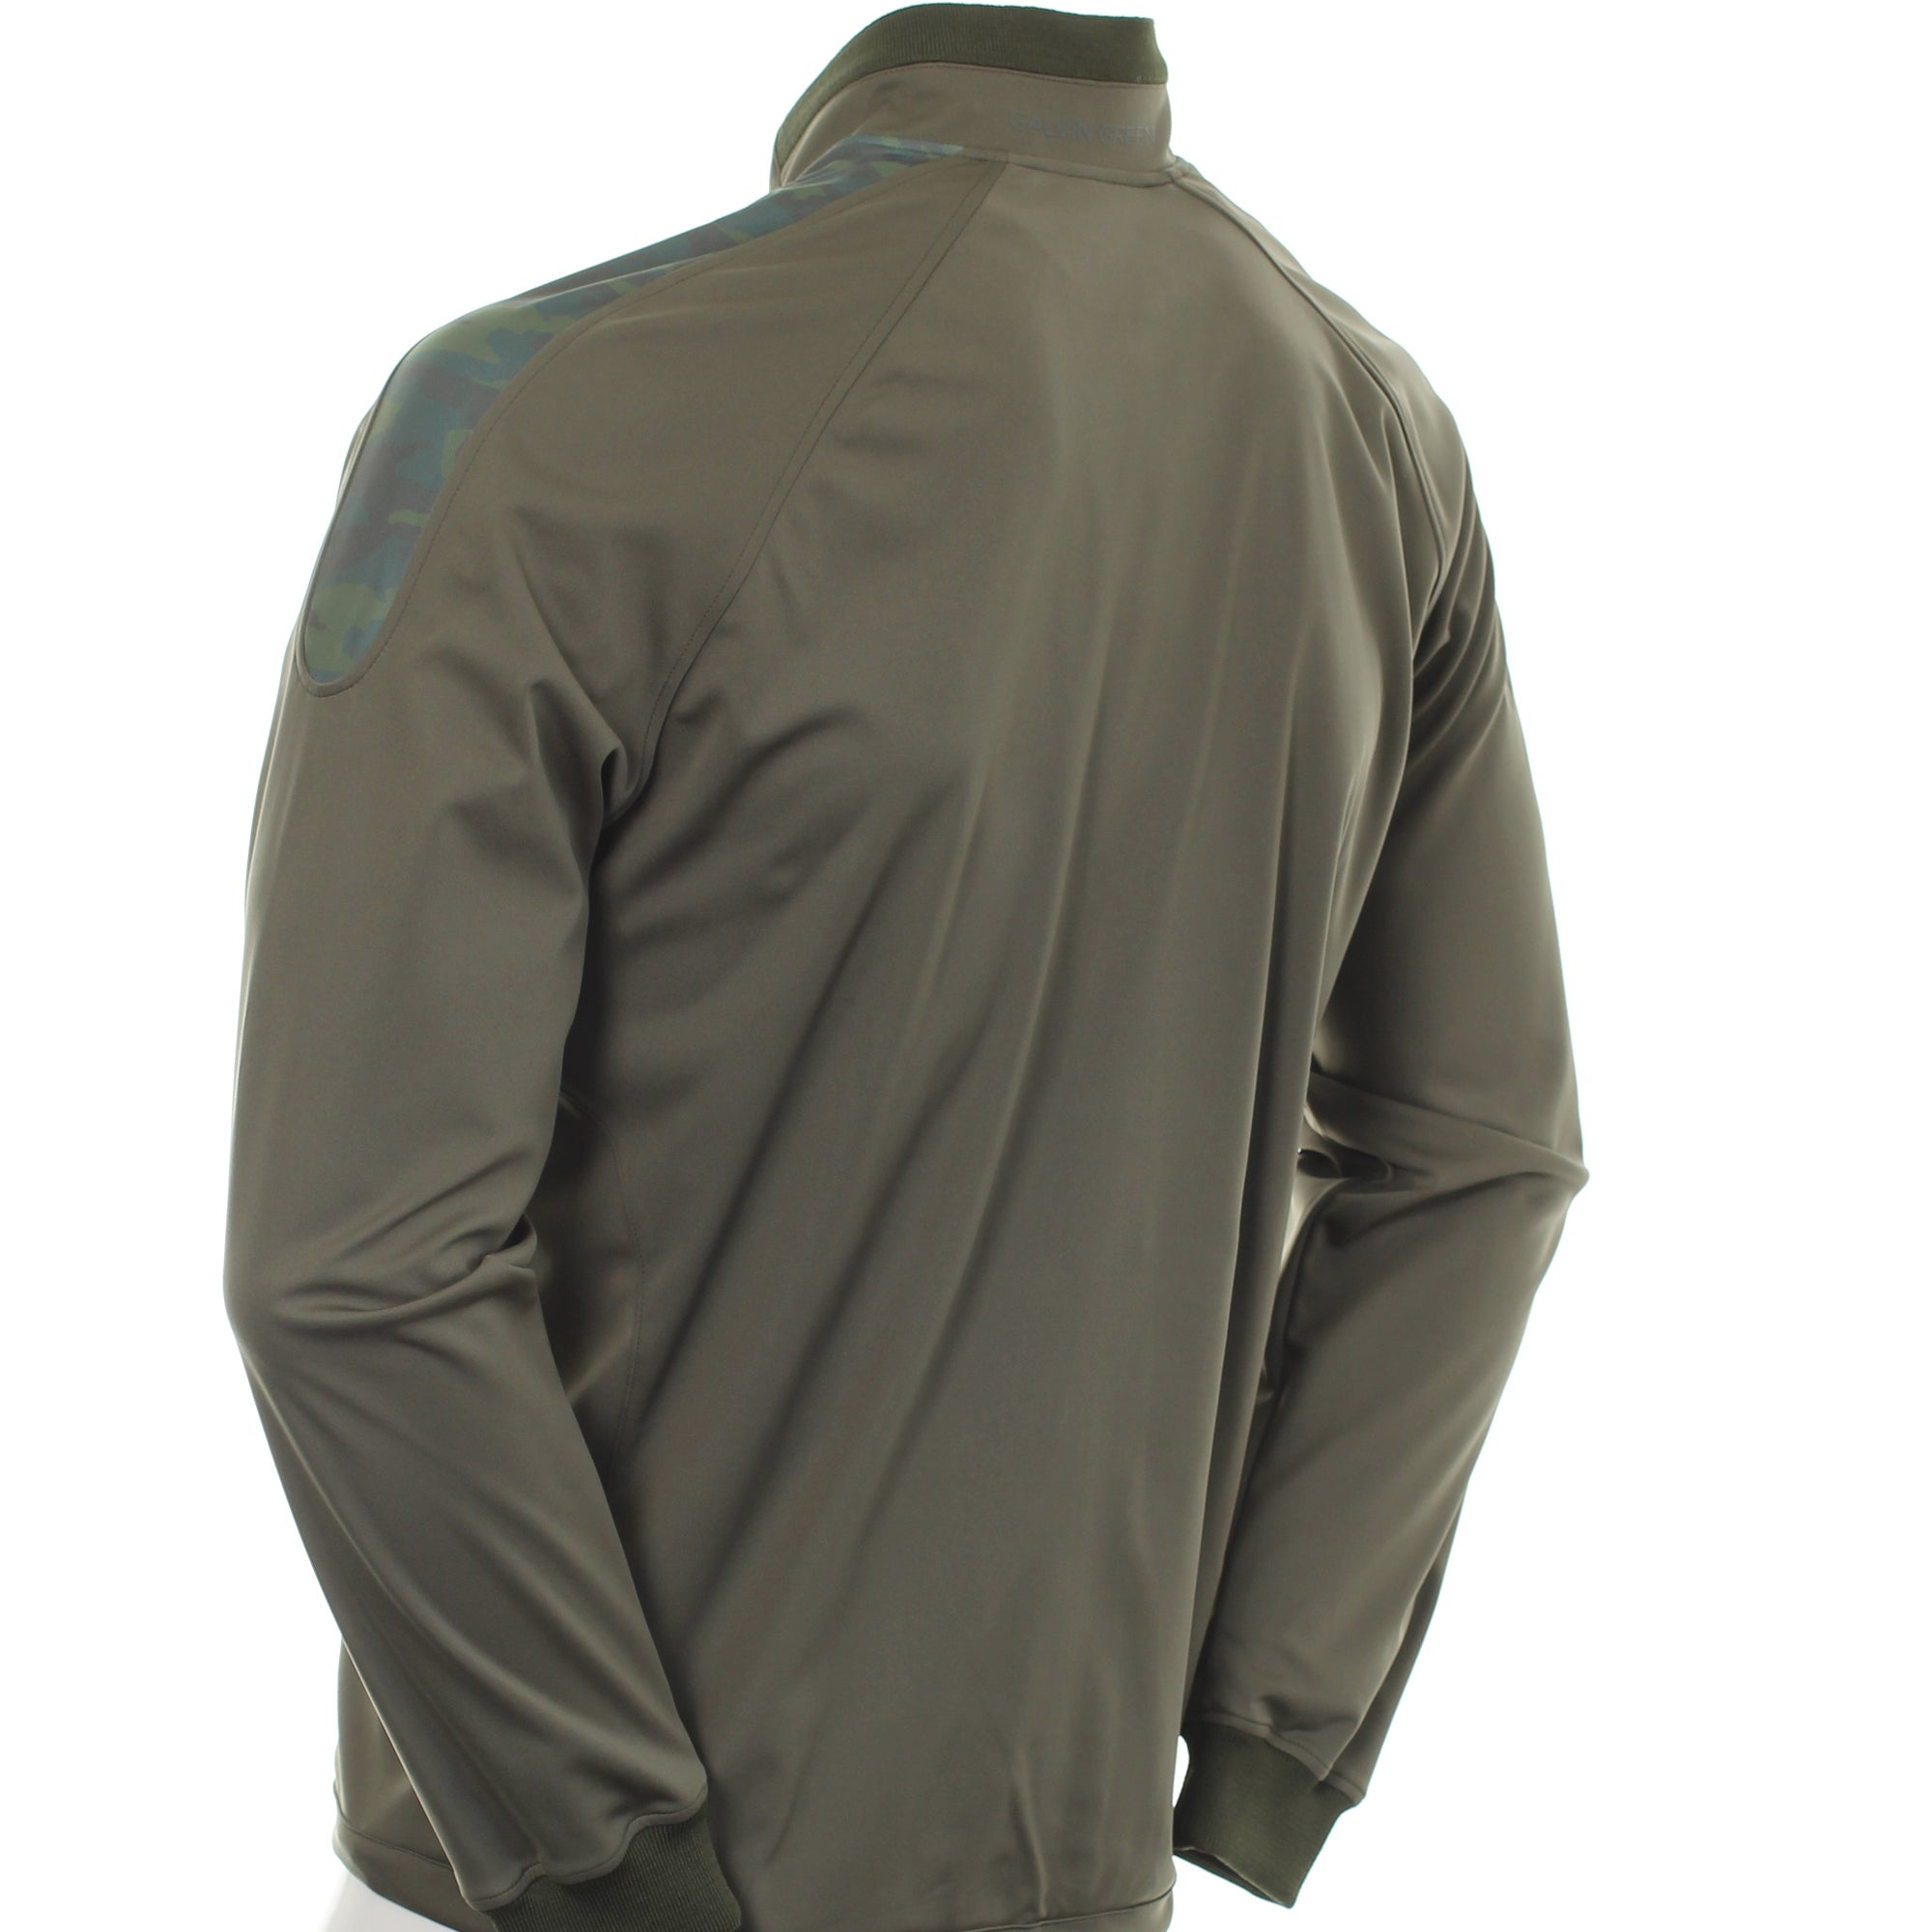 Galvin Green Edge Olive Interface-1 Golf Jacket